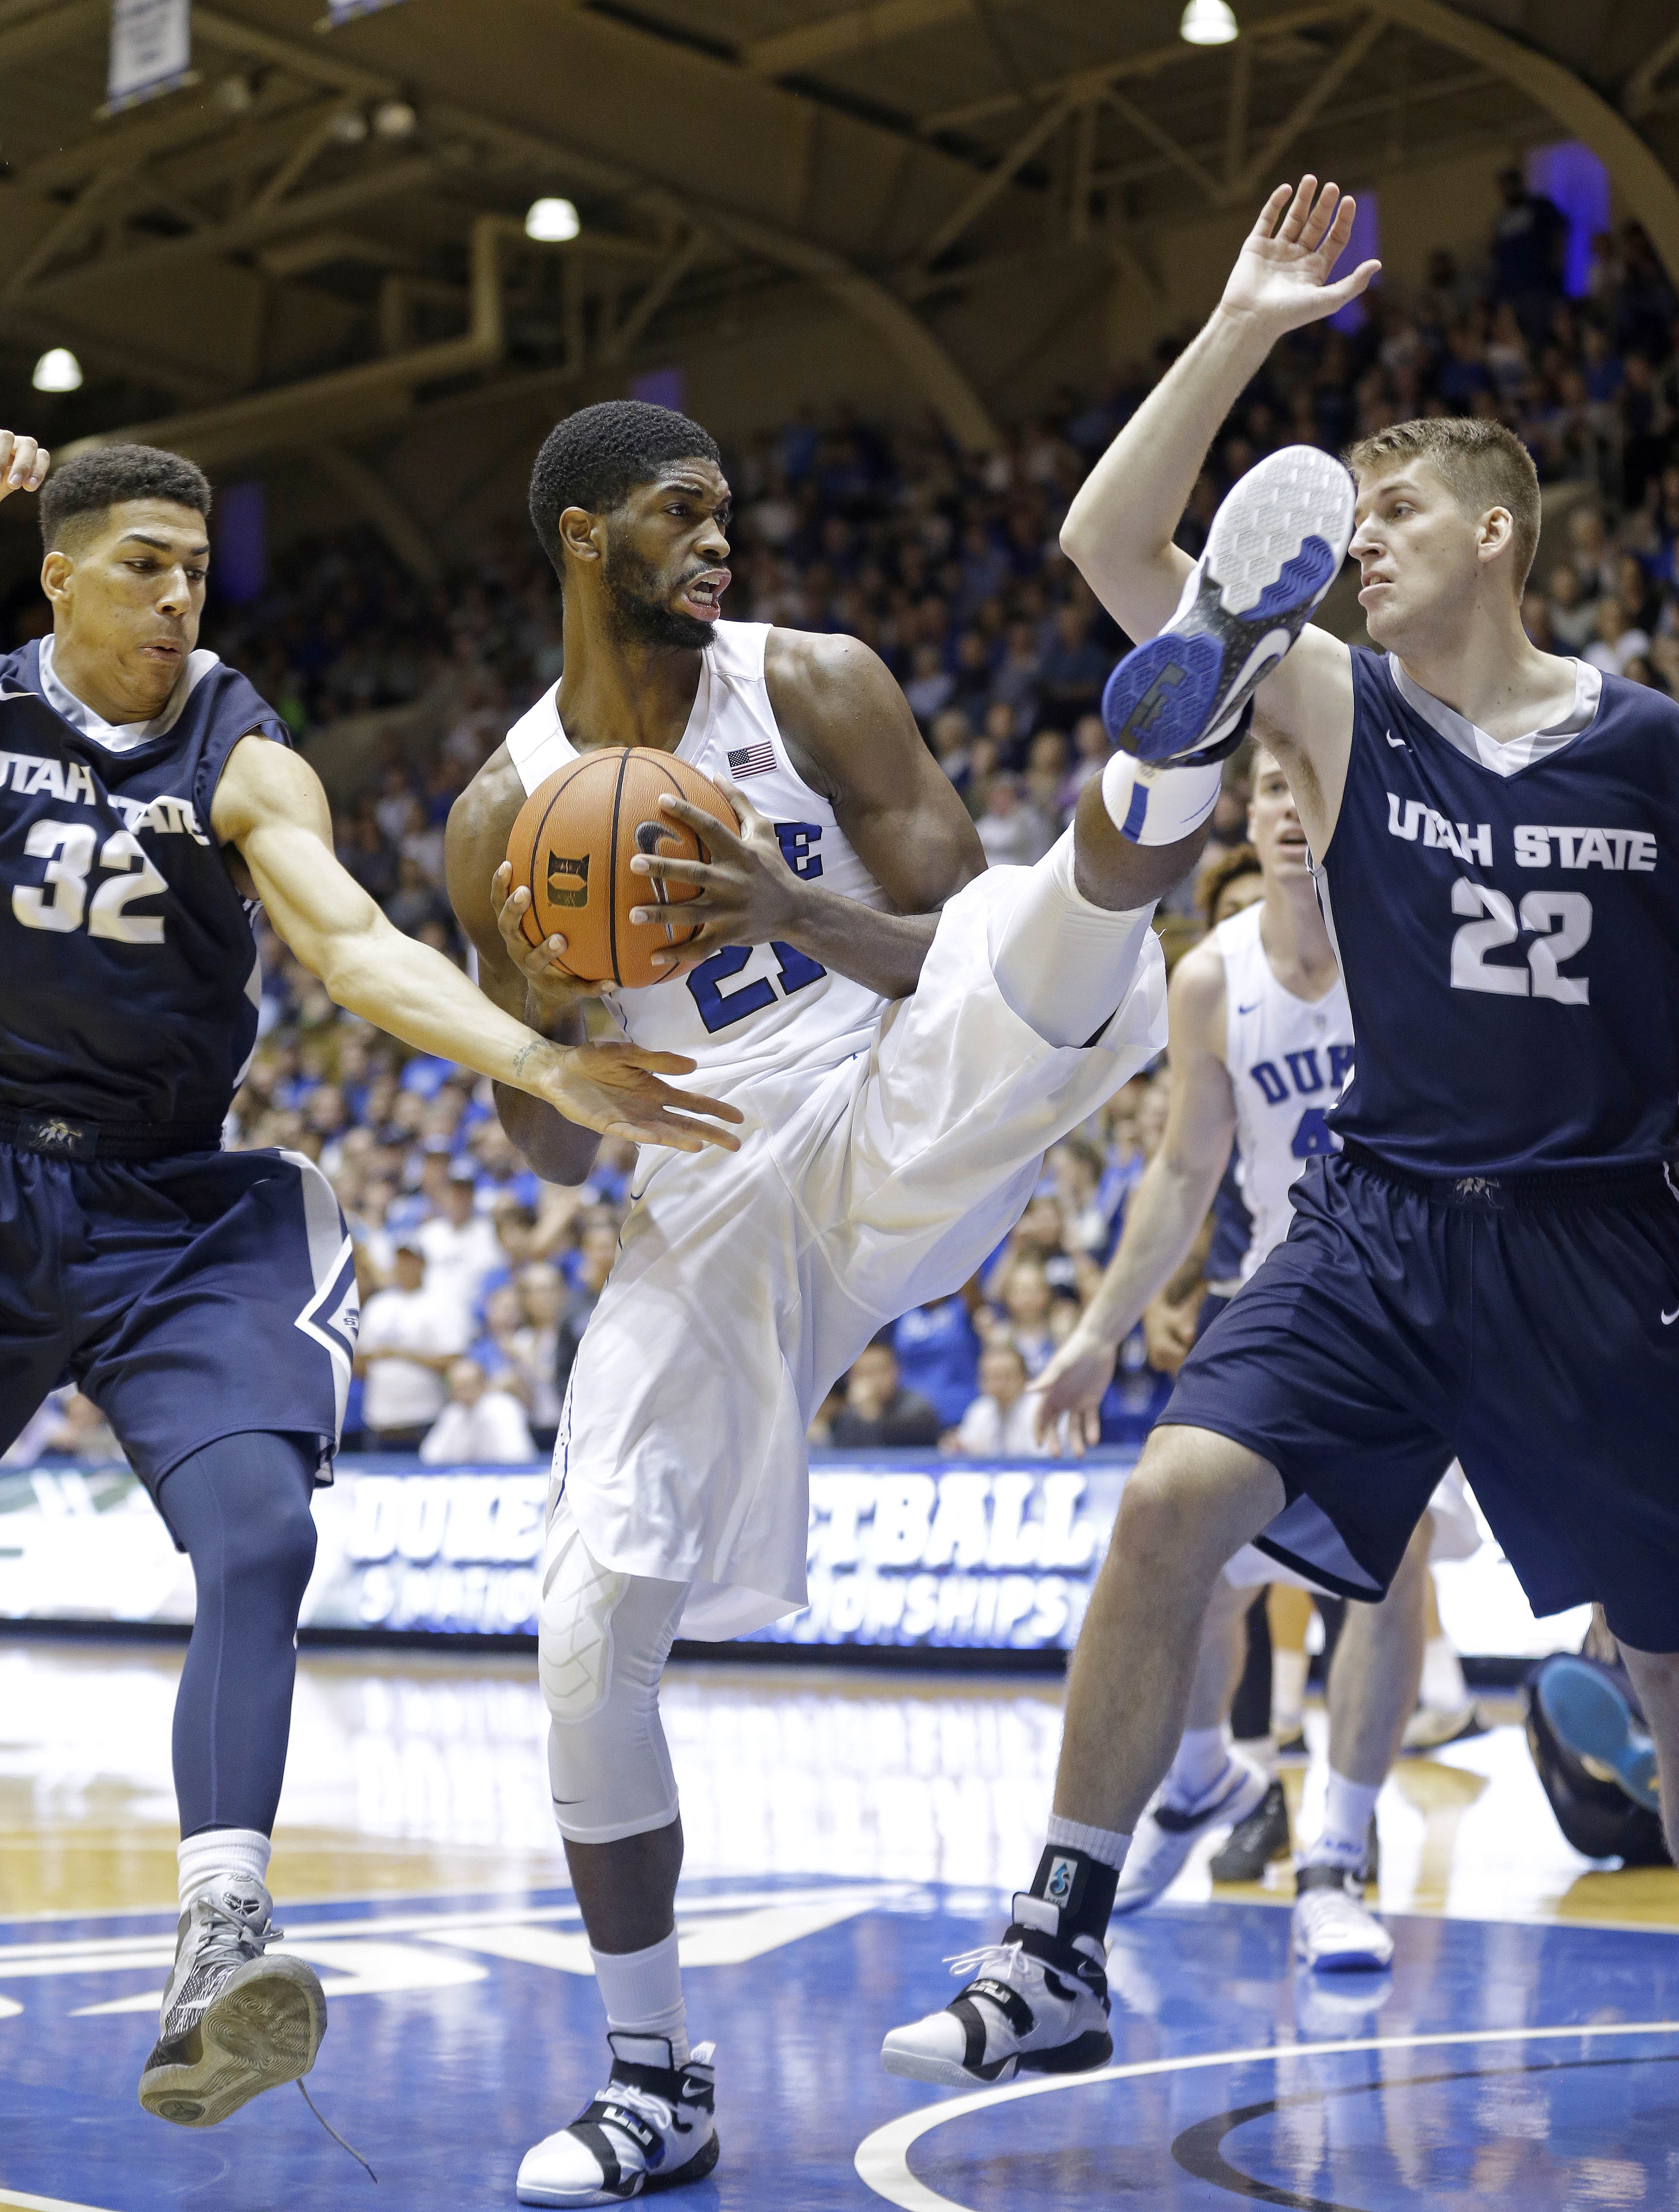 Duke's Amile Jefferson, center, grabs a rebound as Utah State's Grayson Moore (32) and Quinn Taylor (22) defend during the first half of an NCAA college basketball game in Durham, N.C., Sunday, Nov. 29, 2015. (AP Photo/Gerry Broome)